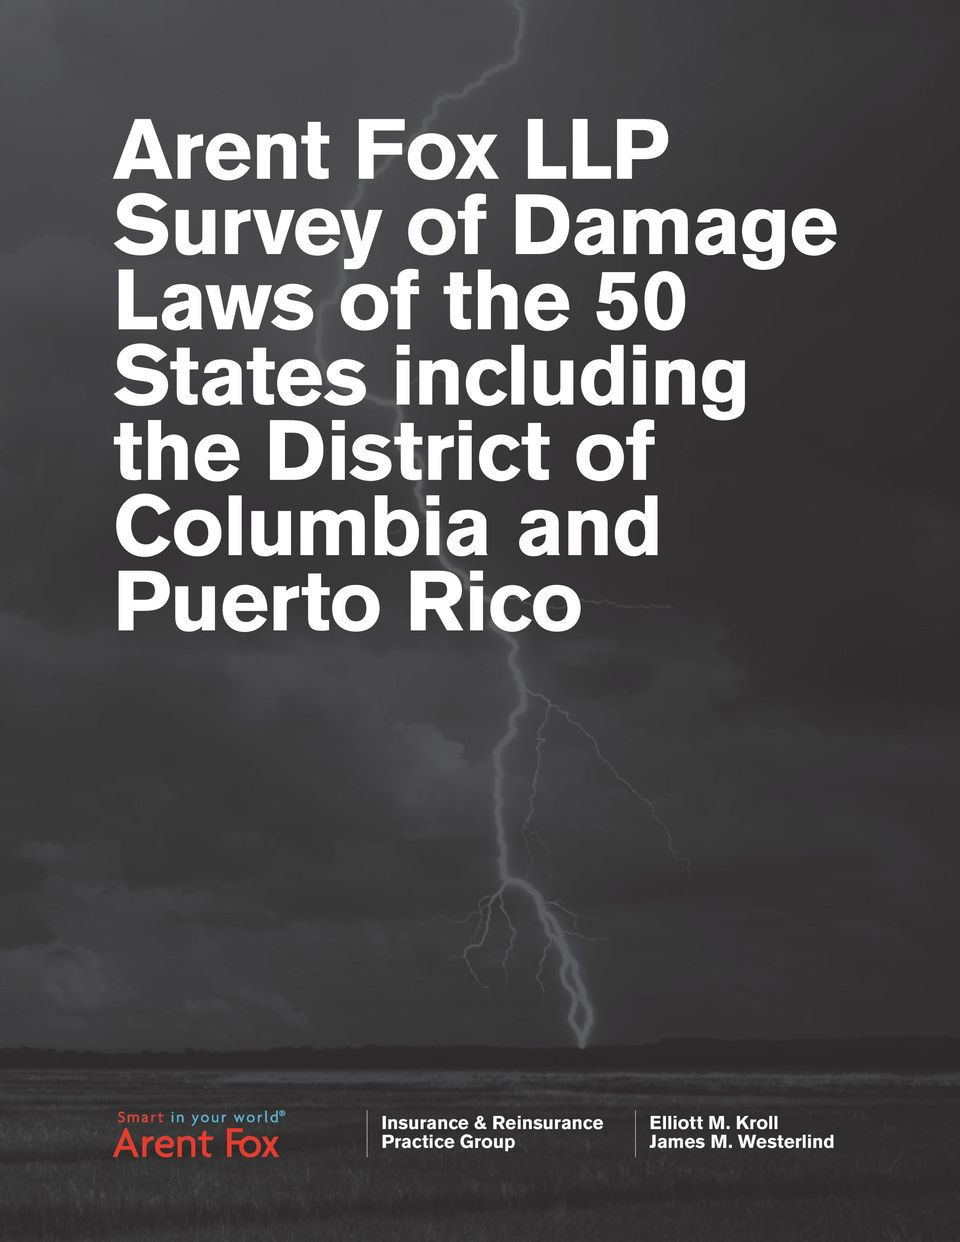 and Puerto Rico Insurance & Reinsurance